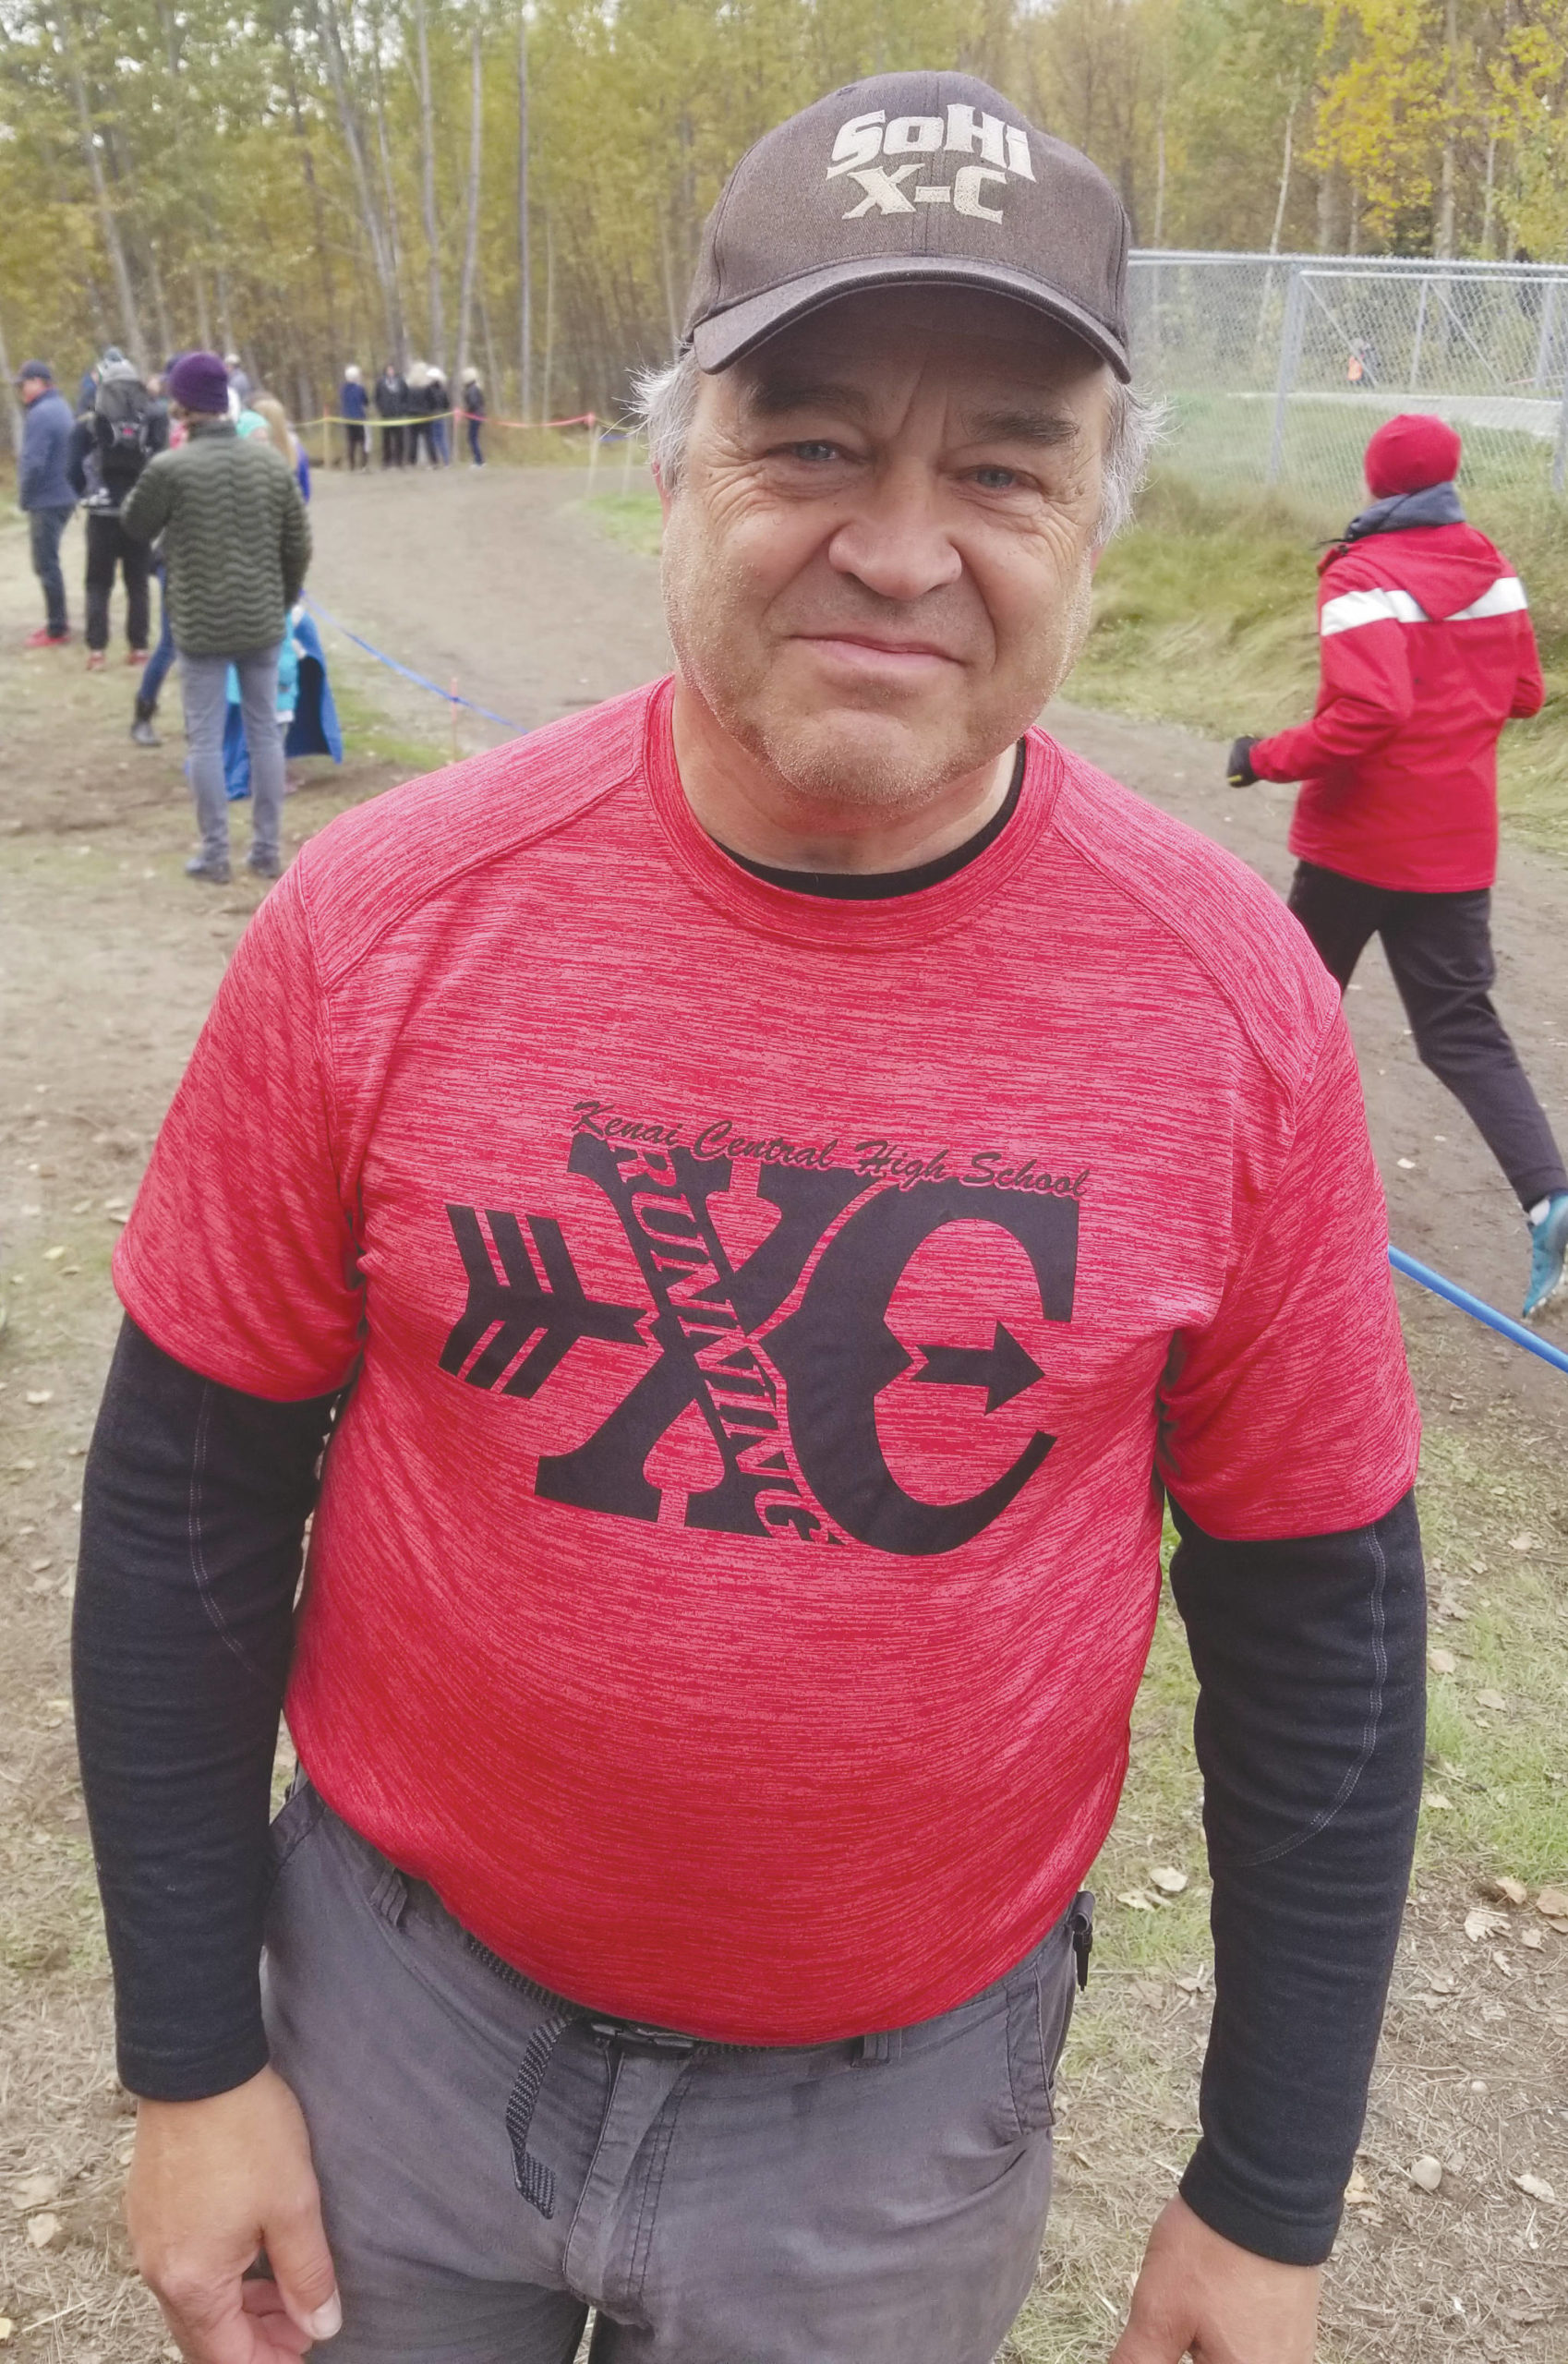 During the 2019 cross-country season, Soldotna High School coach Ted McKenney put on Kenai Central gear to support the Kardinals in the small-schools race before switching back to SoHi gear for the big-schools race. (Photo by Crystal McKenney)